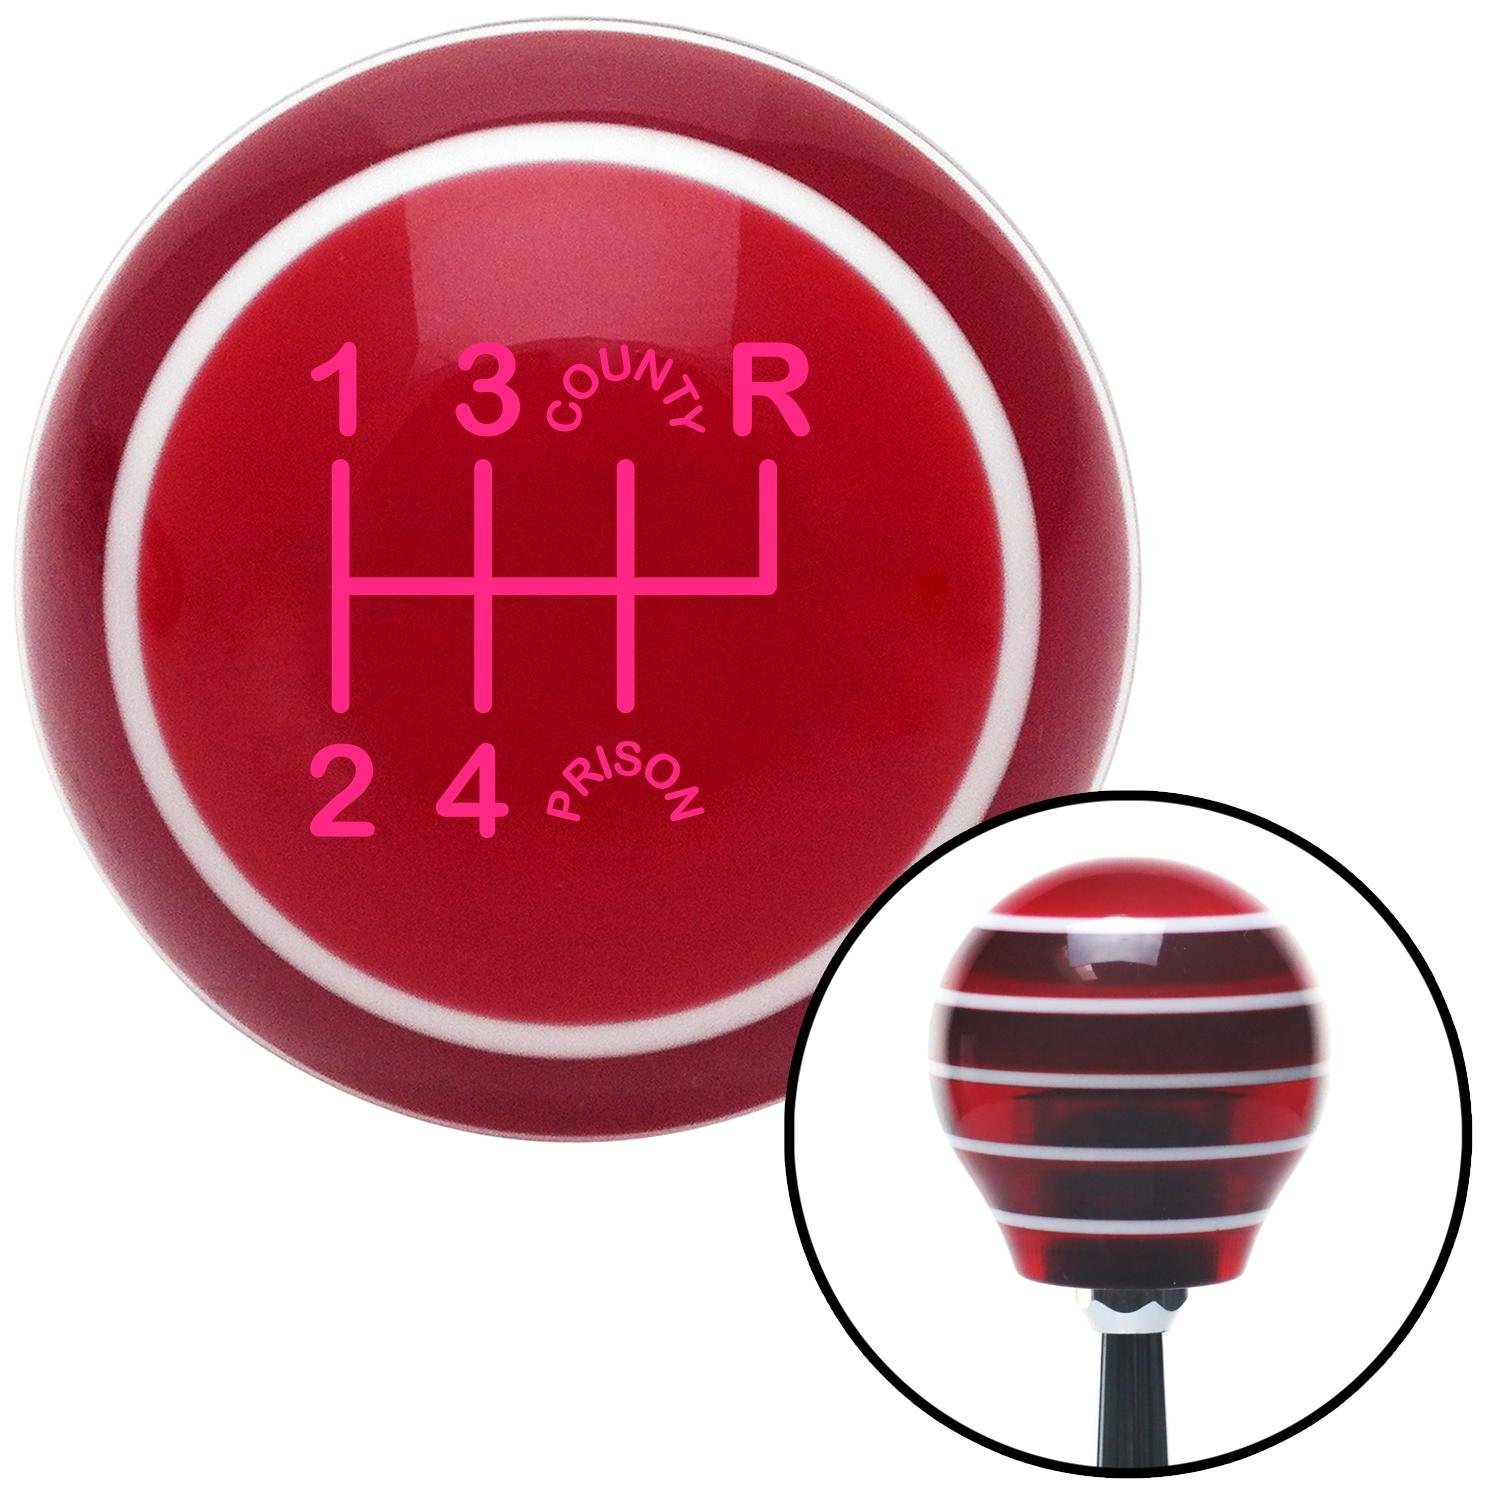 American Shifter 118079 Red Stripe Shift Knob with M16 x 1.5 Insert Pink Shift Pattern CP26n